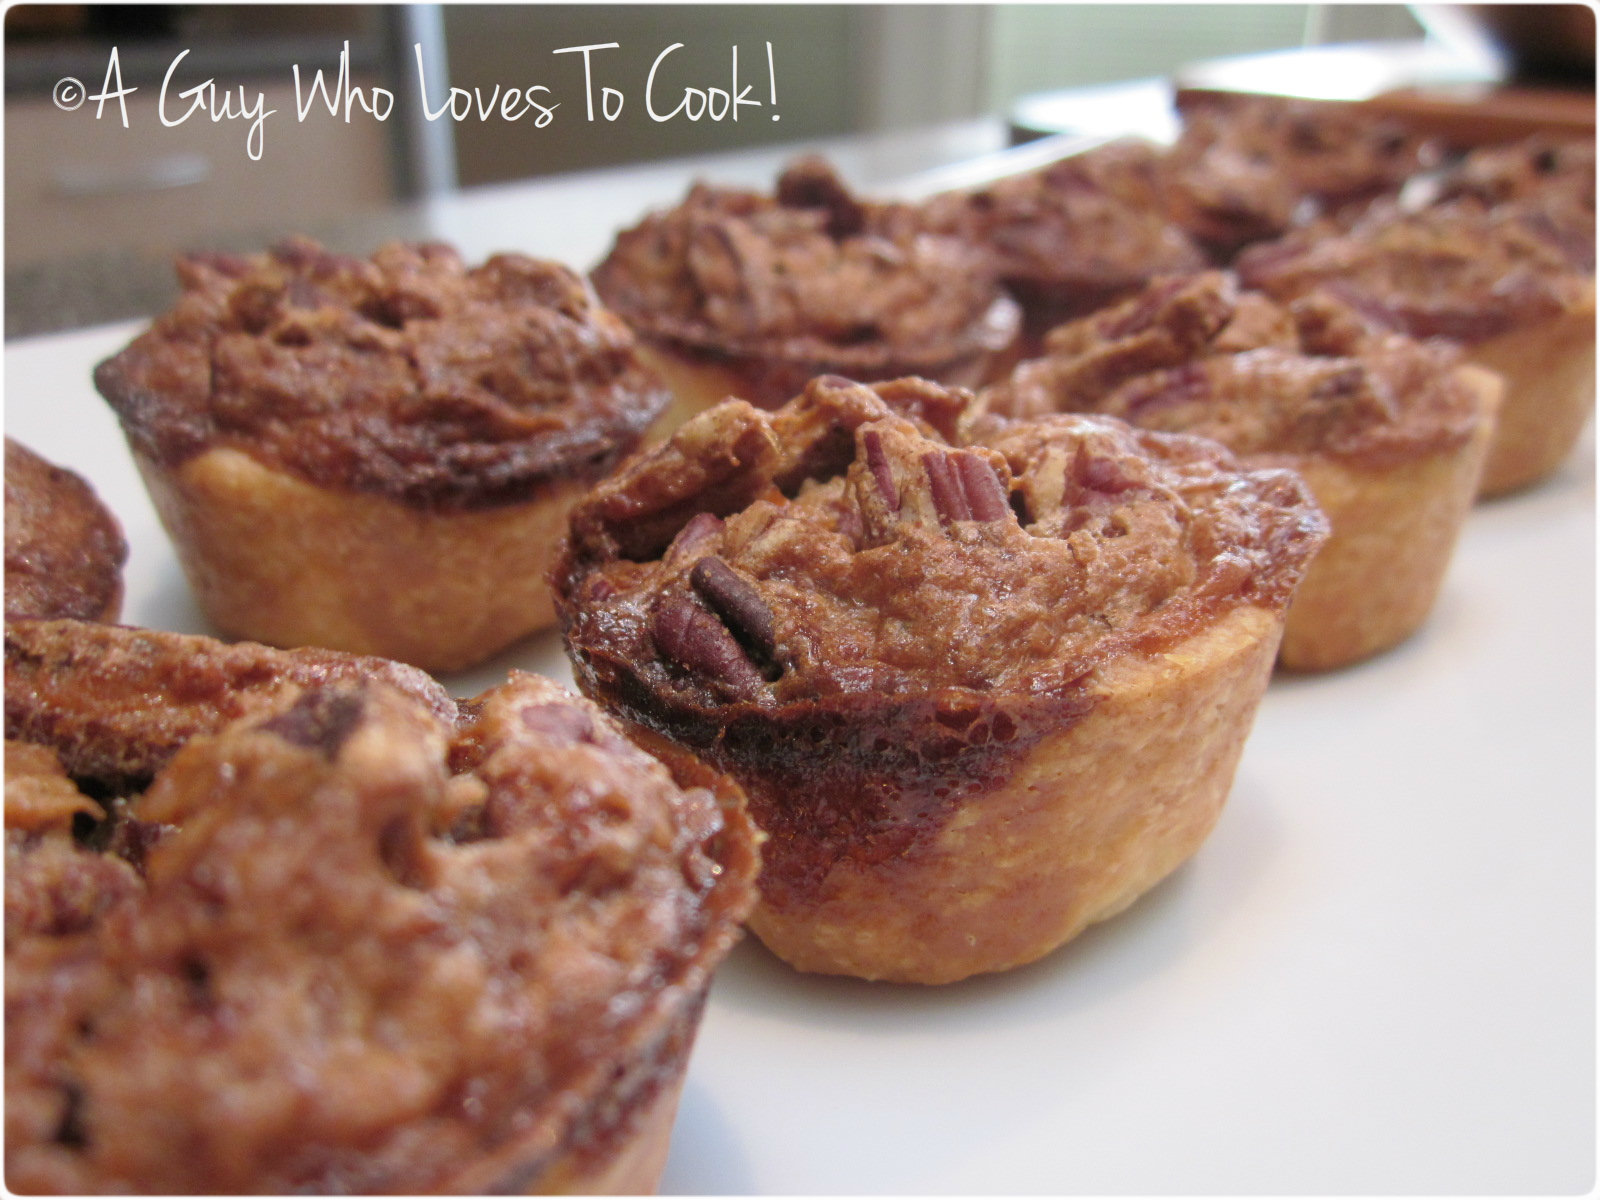 A Guy Who Loves to Cook!: Pecan Tassies